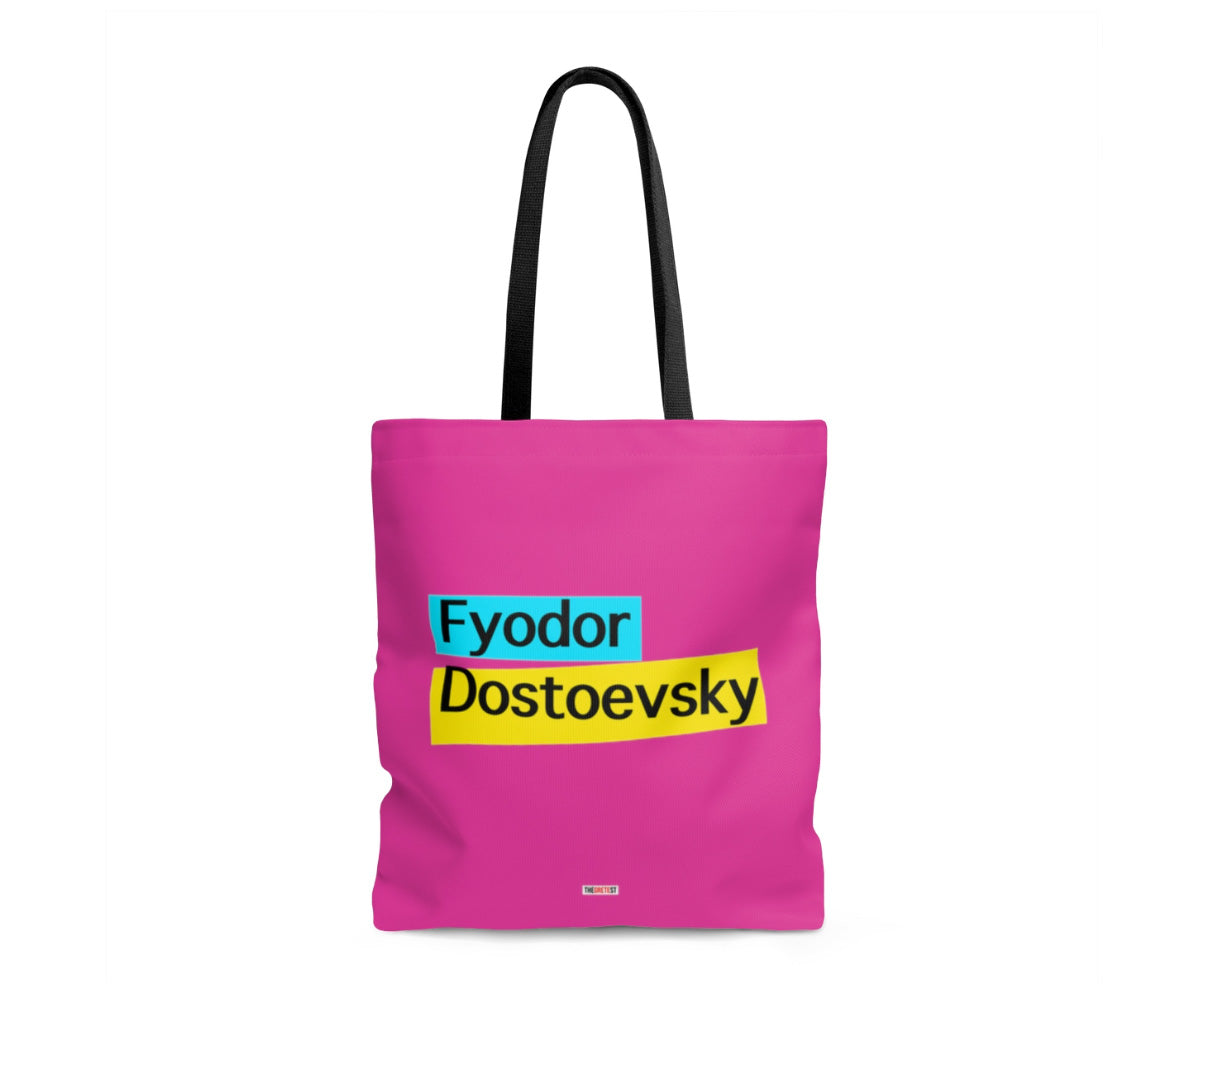 Dostoyevsky Tote bag - Gifts for readers